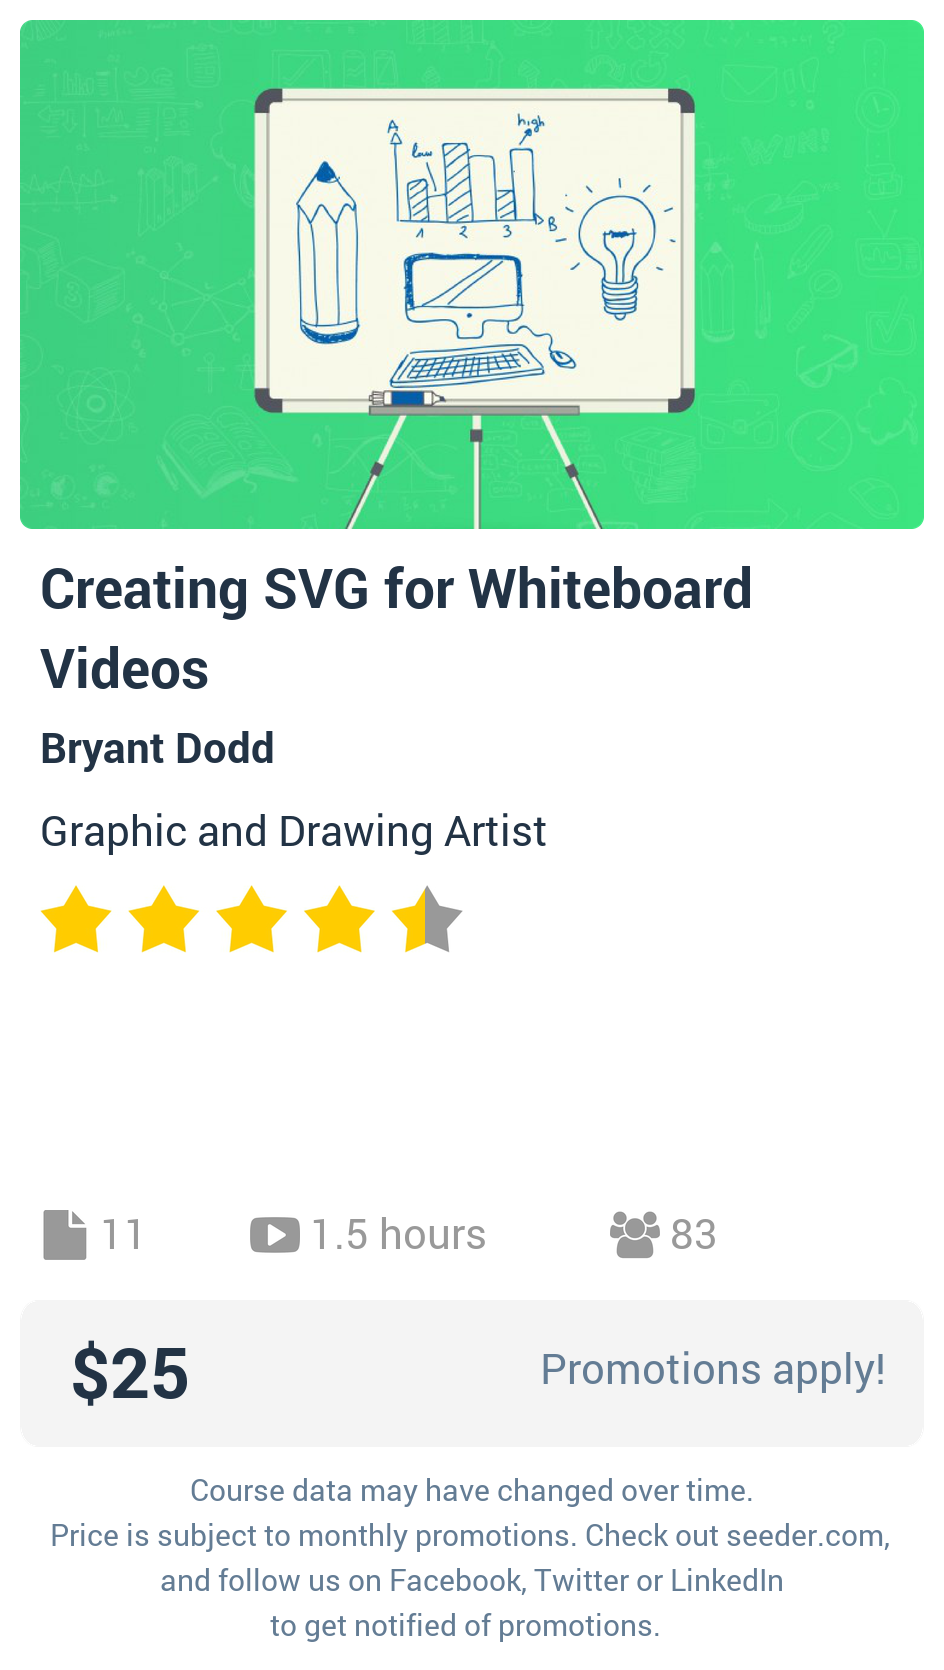 Creating Svg For Whiteboard Videos Seeder Offers Perhaps The Most Dense Collection Of High Quality Online Courses On The Whiteboard Video How To Apply Videos